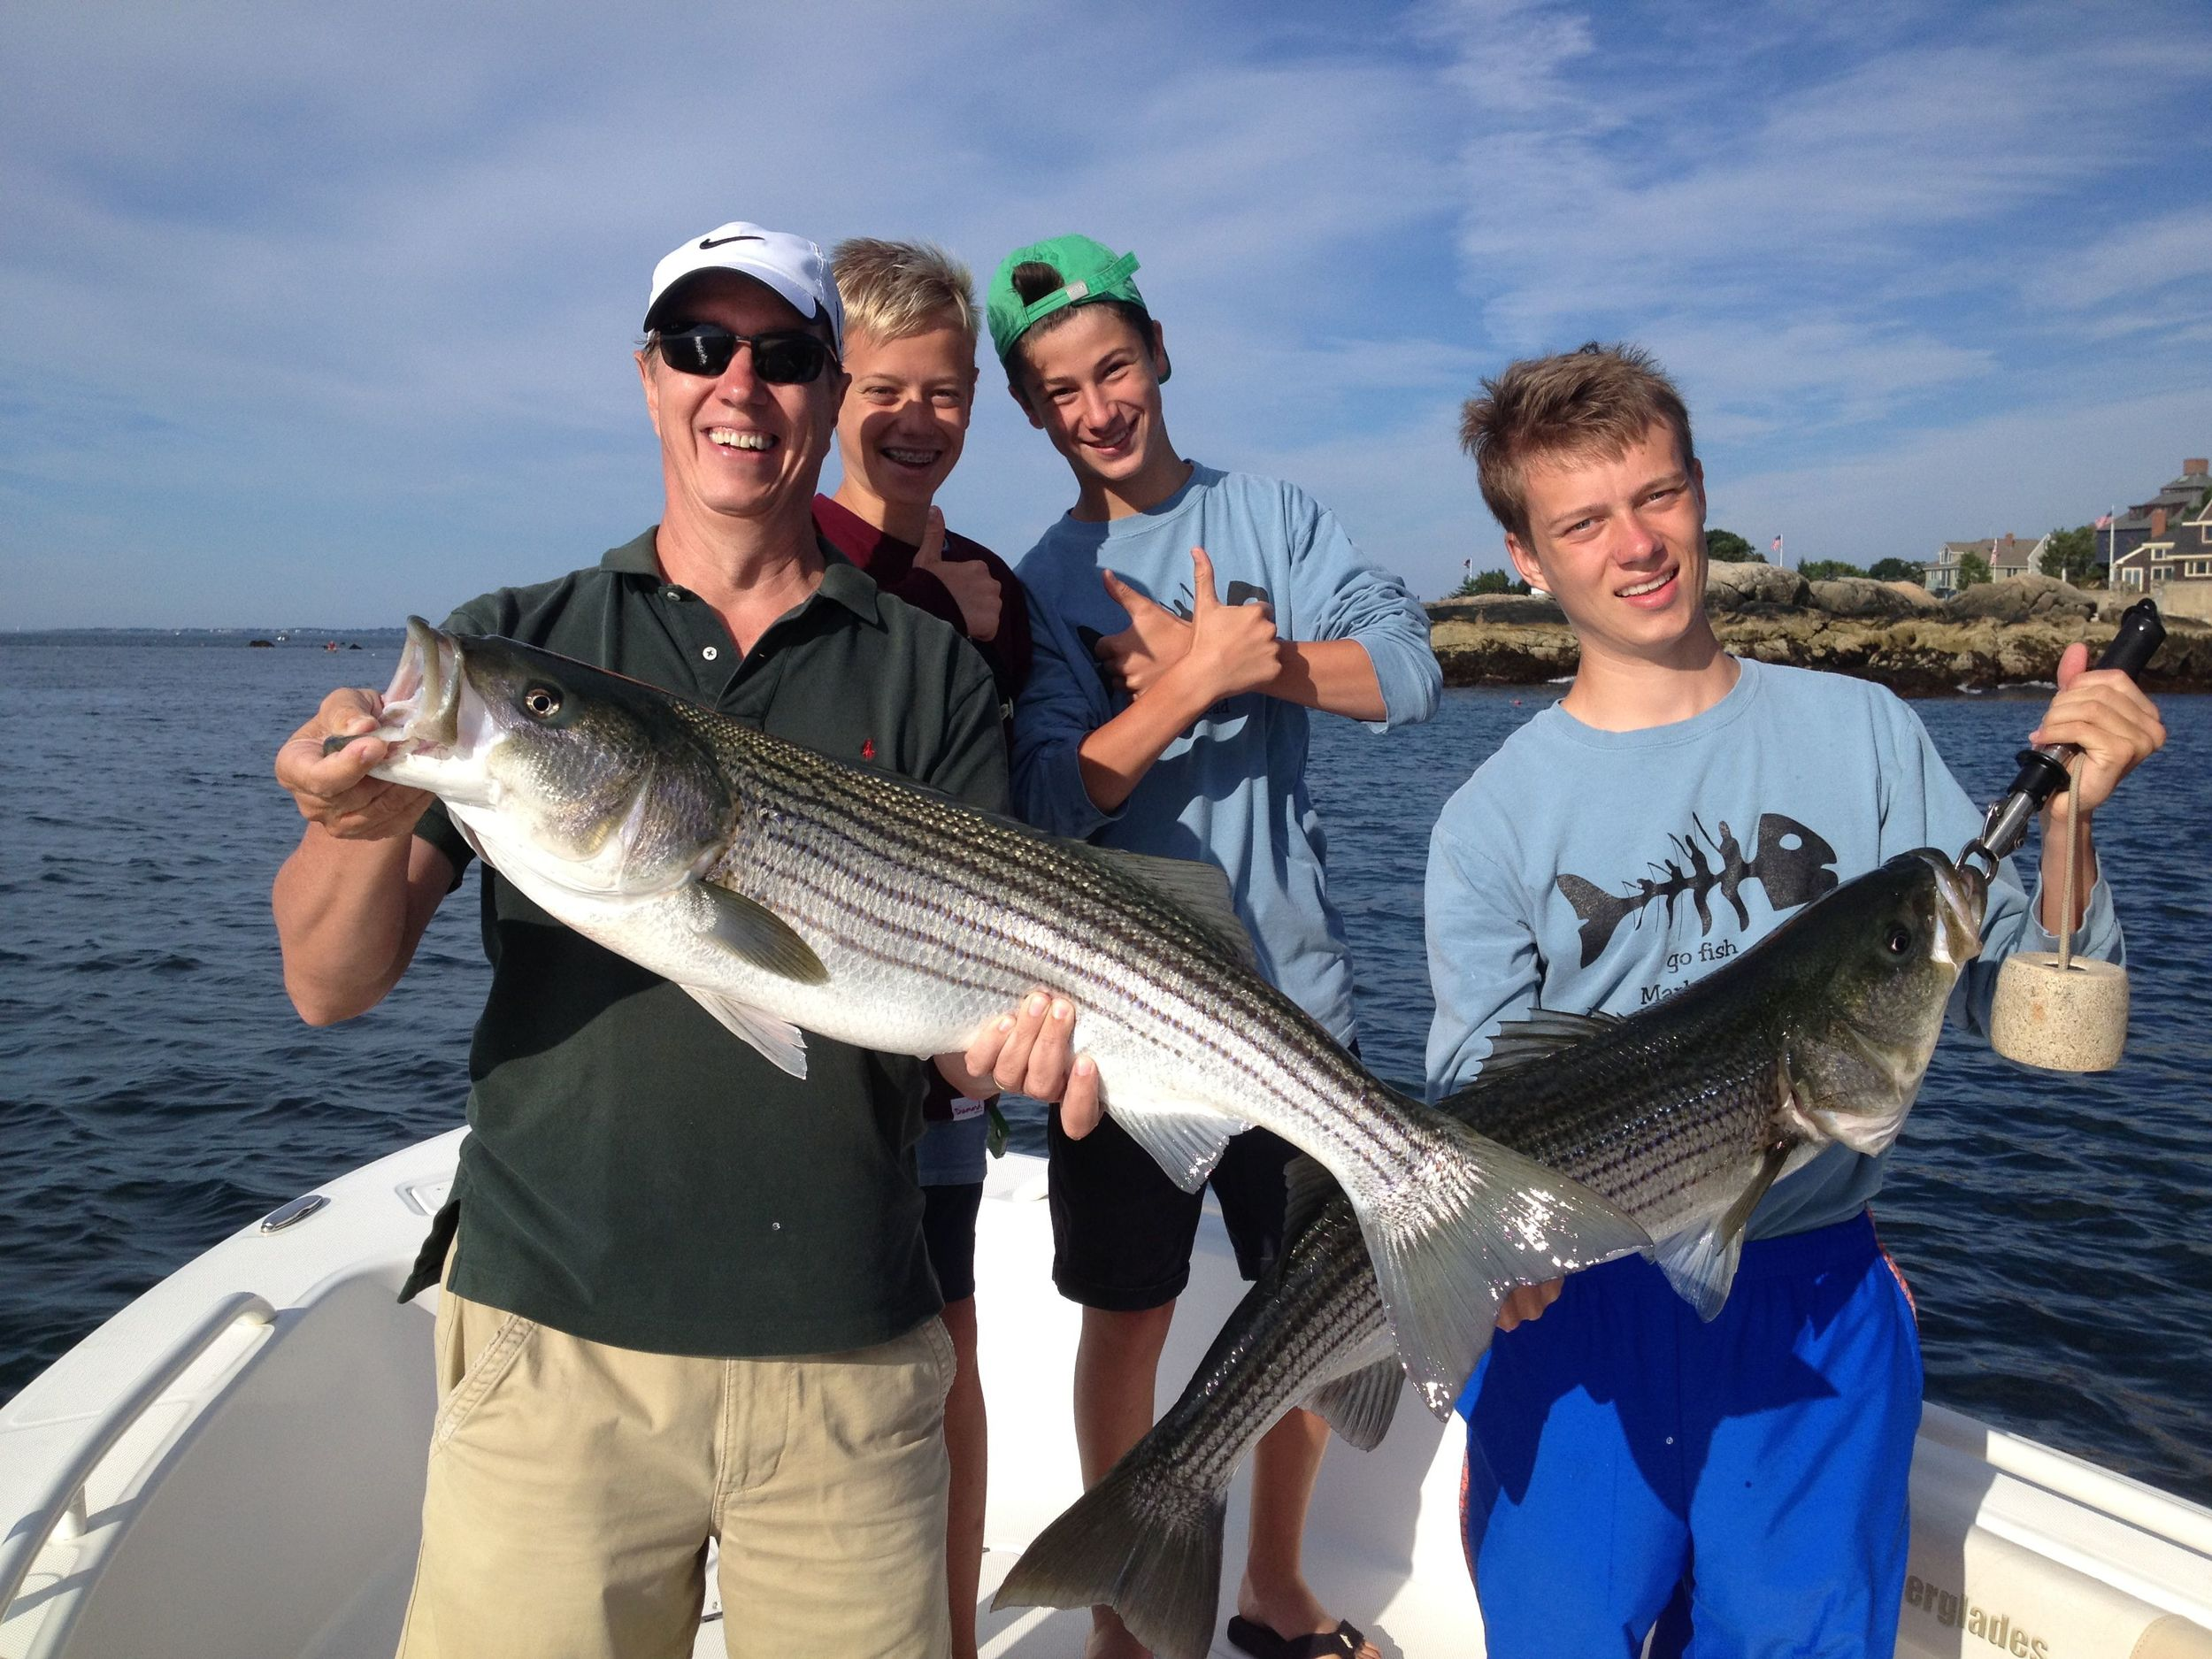 Image of a large striped bass caught on a family fishing trip off Manchester